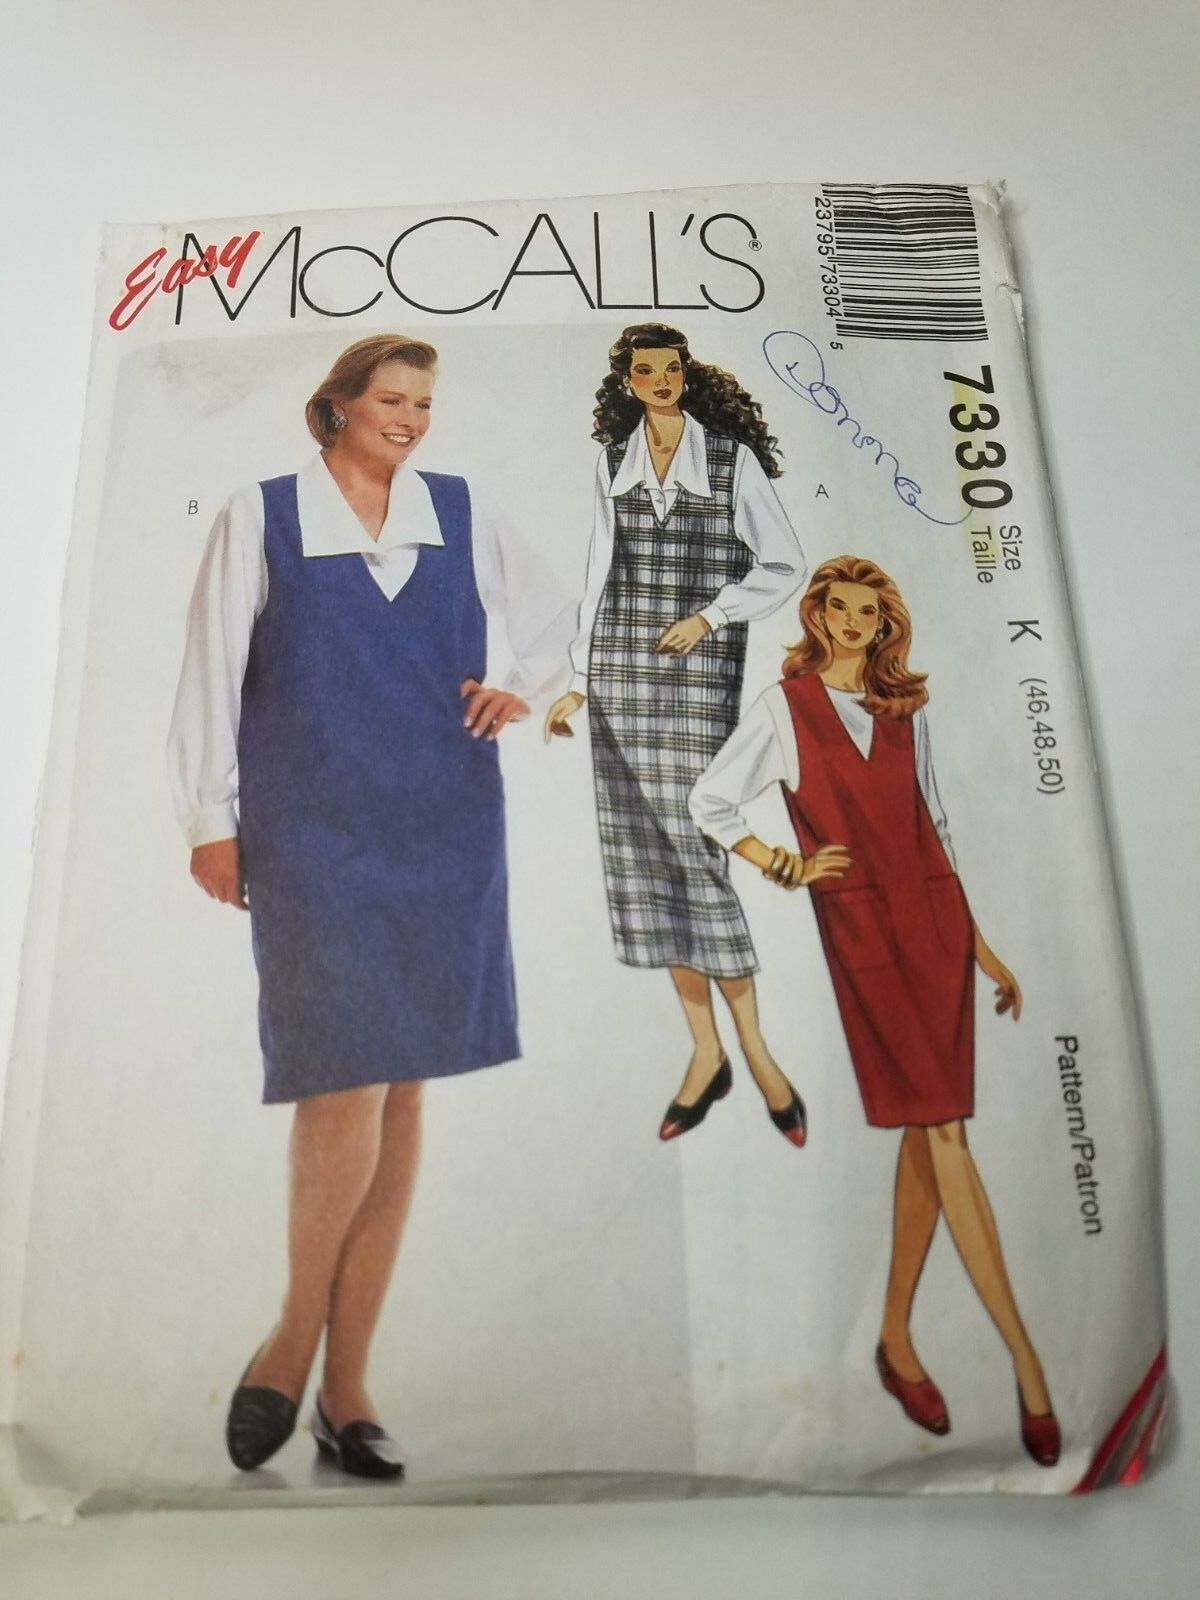 8 Styles 46, 48 Size XXL McCalls Sewing Pattern 8575 Mens Buttoned Shirts